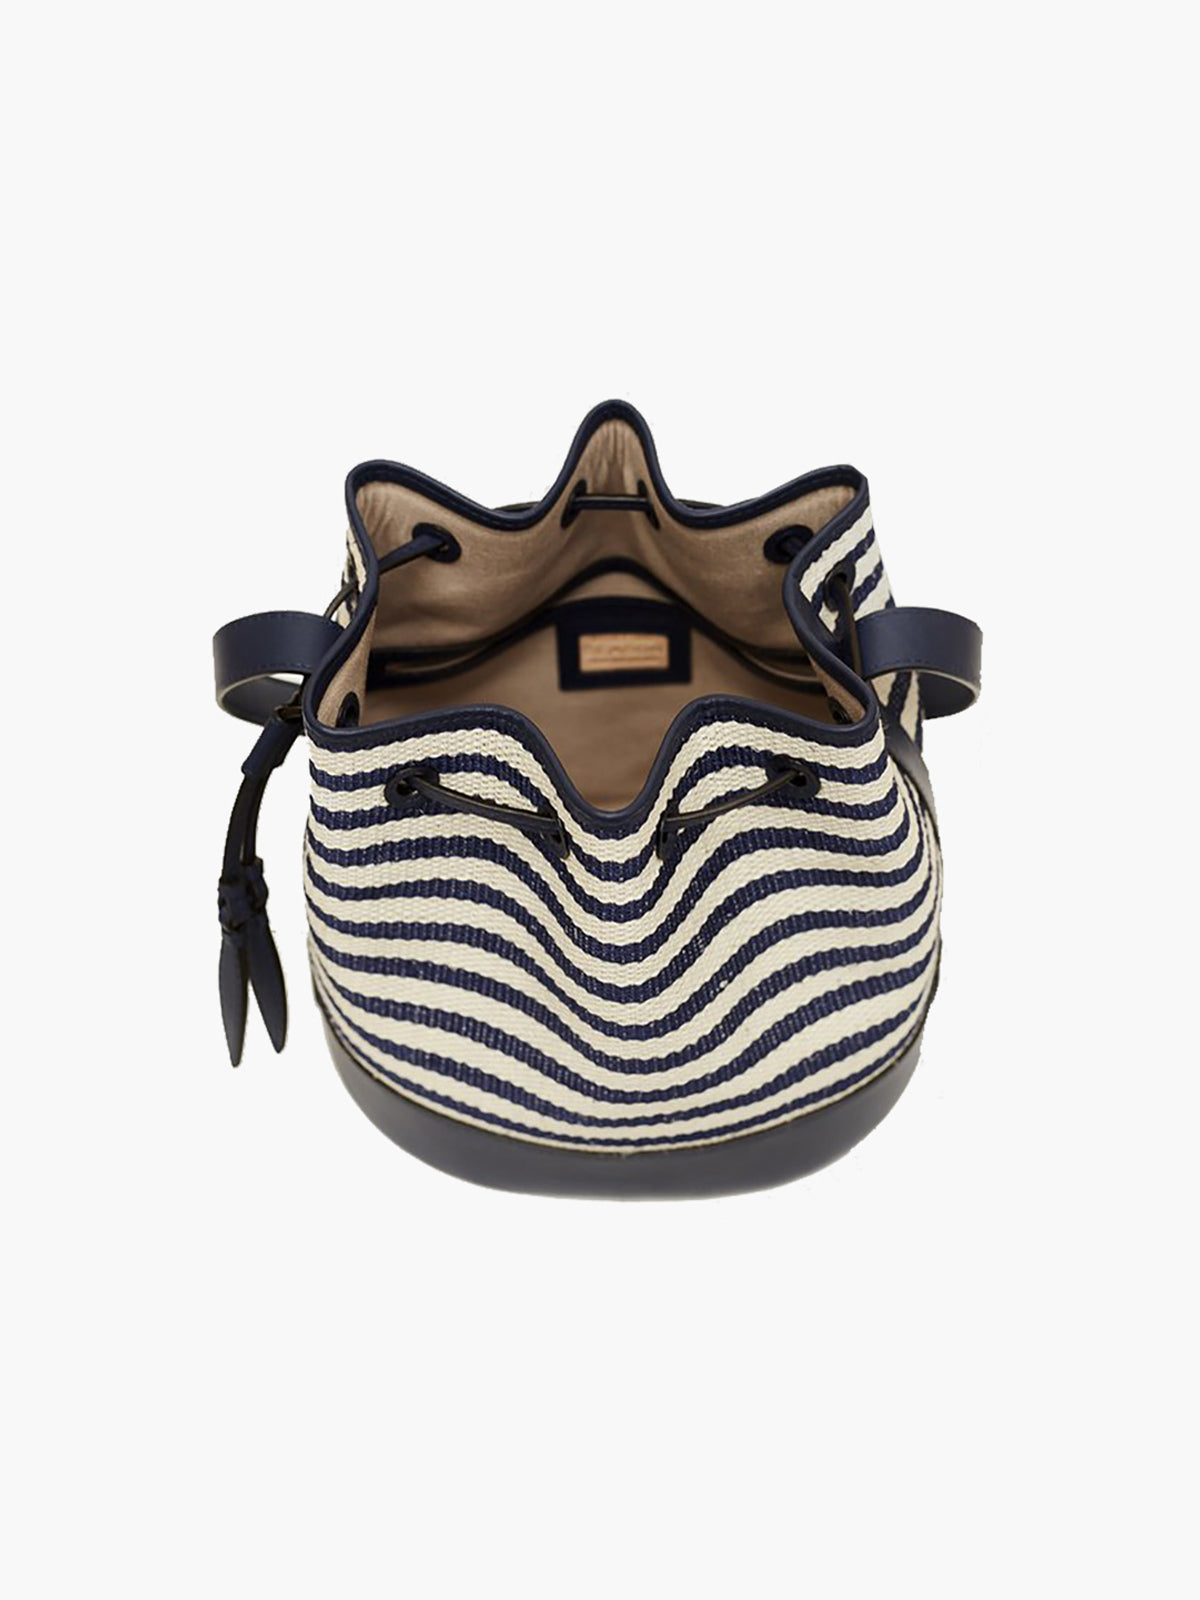 Woven Large Drawstring Bag | Navy Stripe